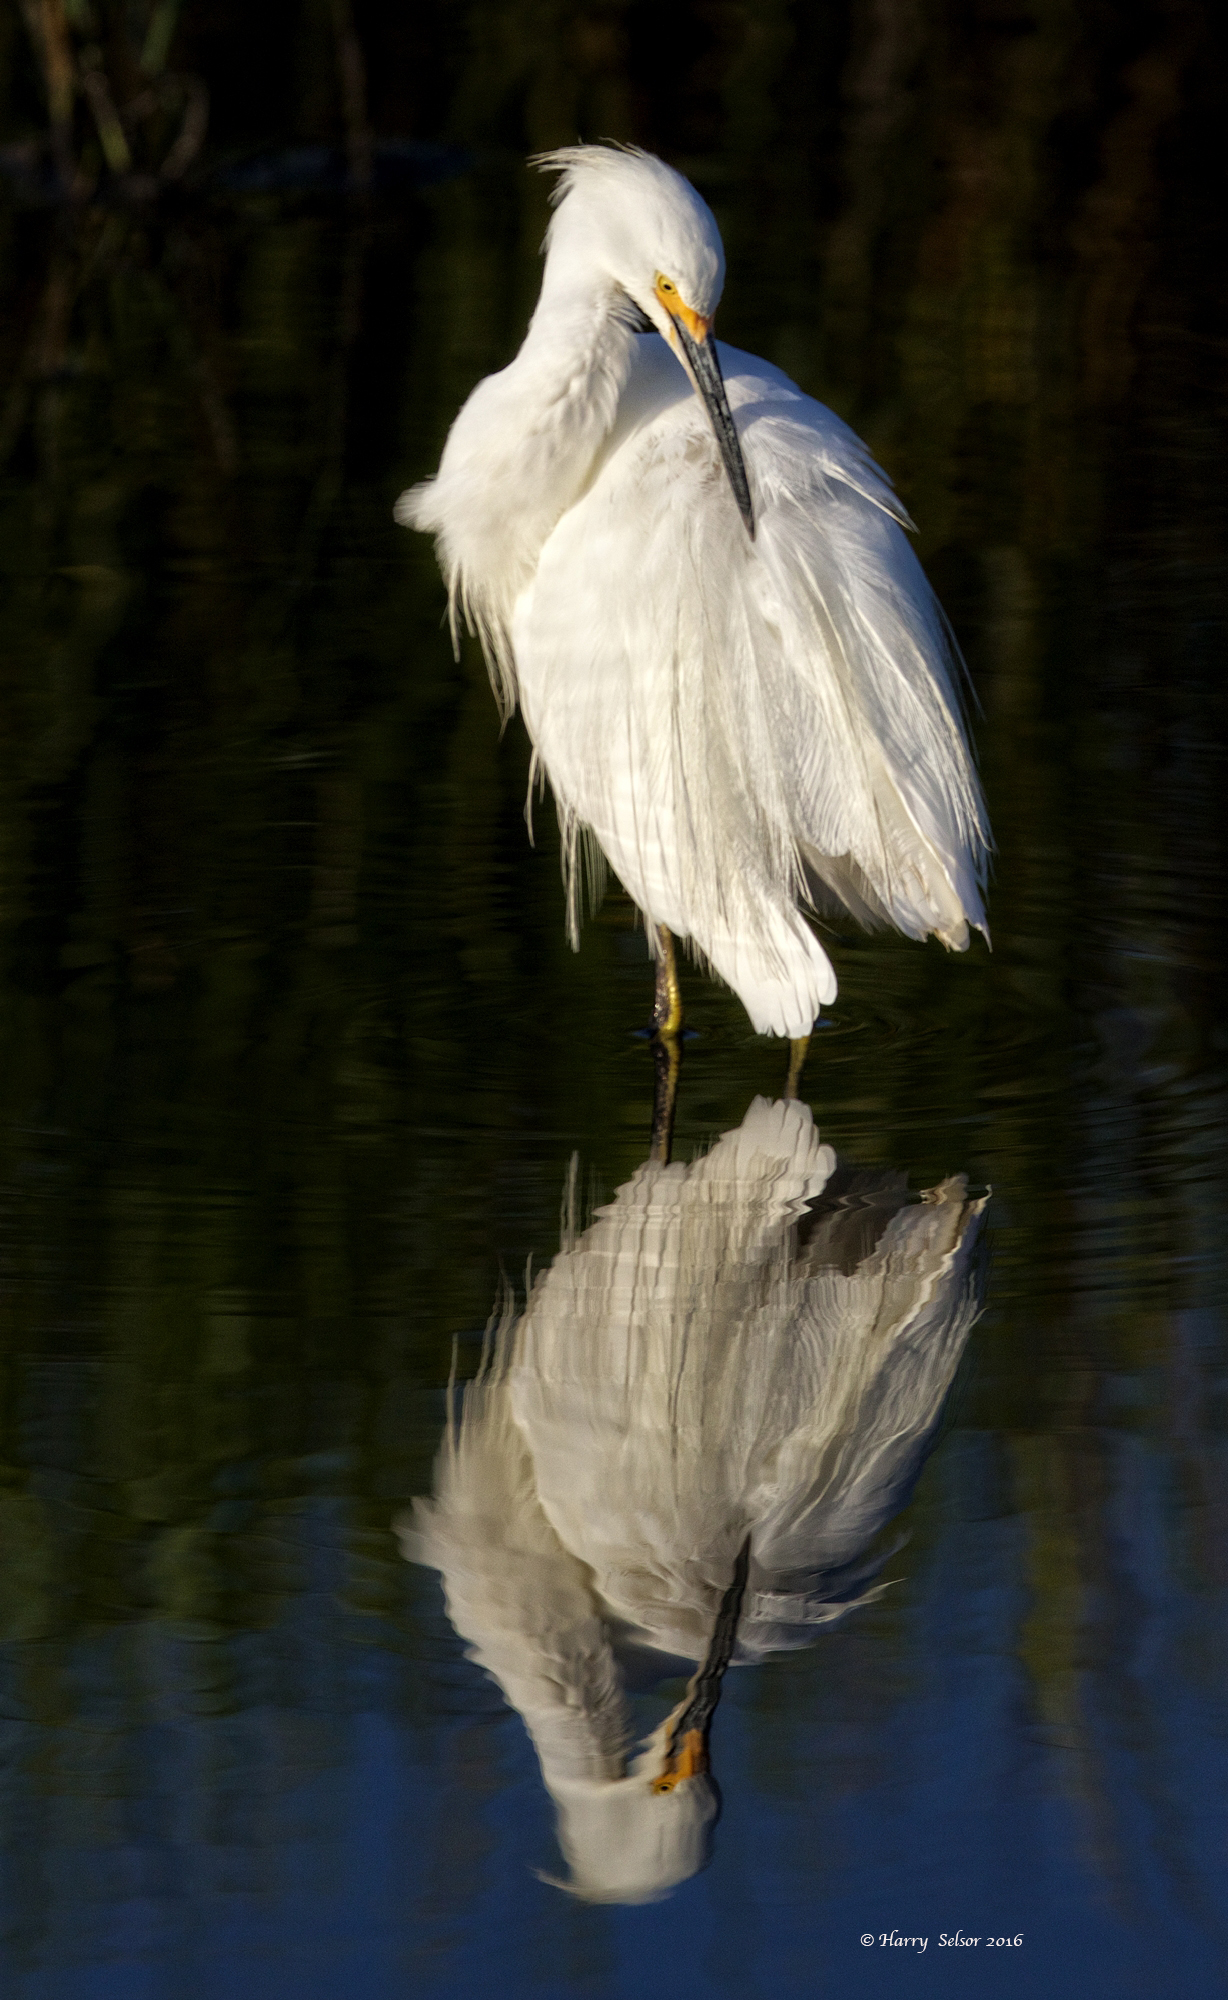 The Snowy Egret flew in also and immediately began preening its feathers